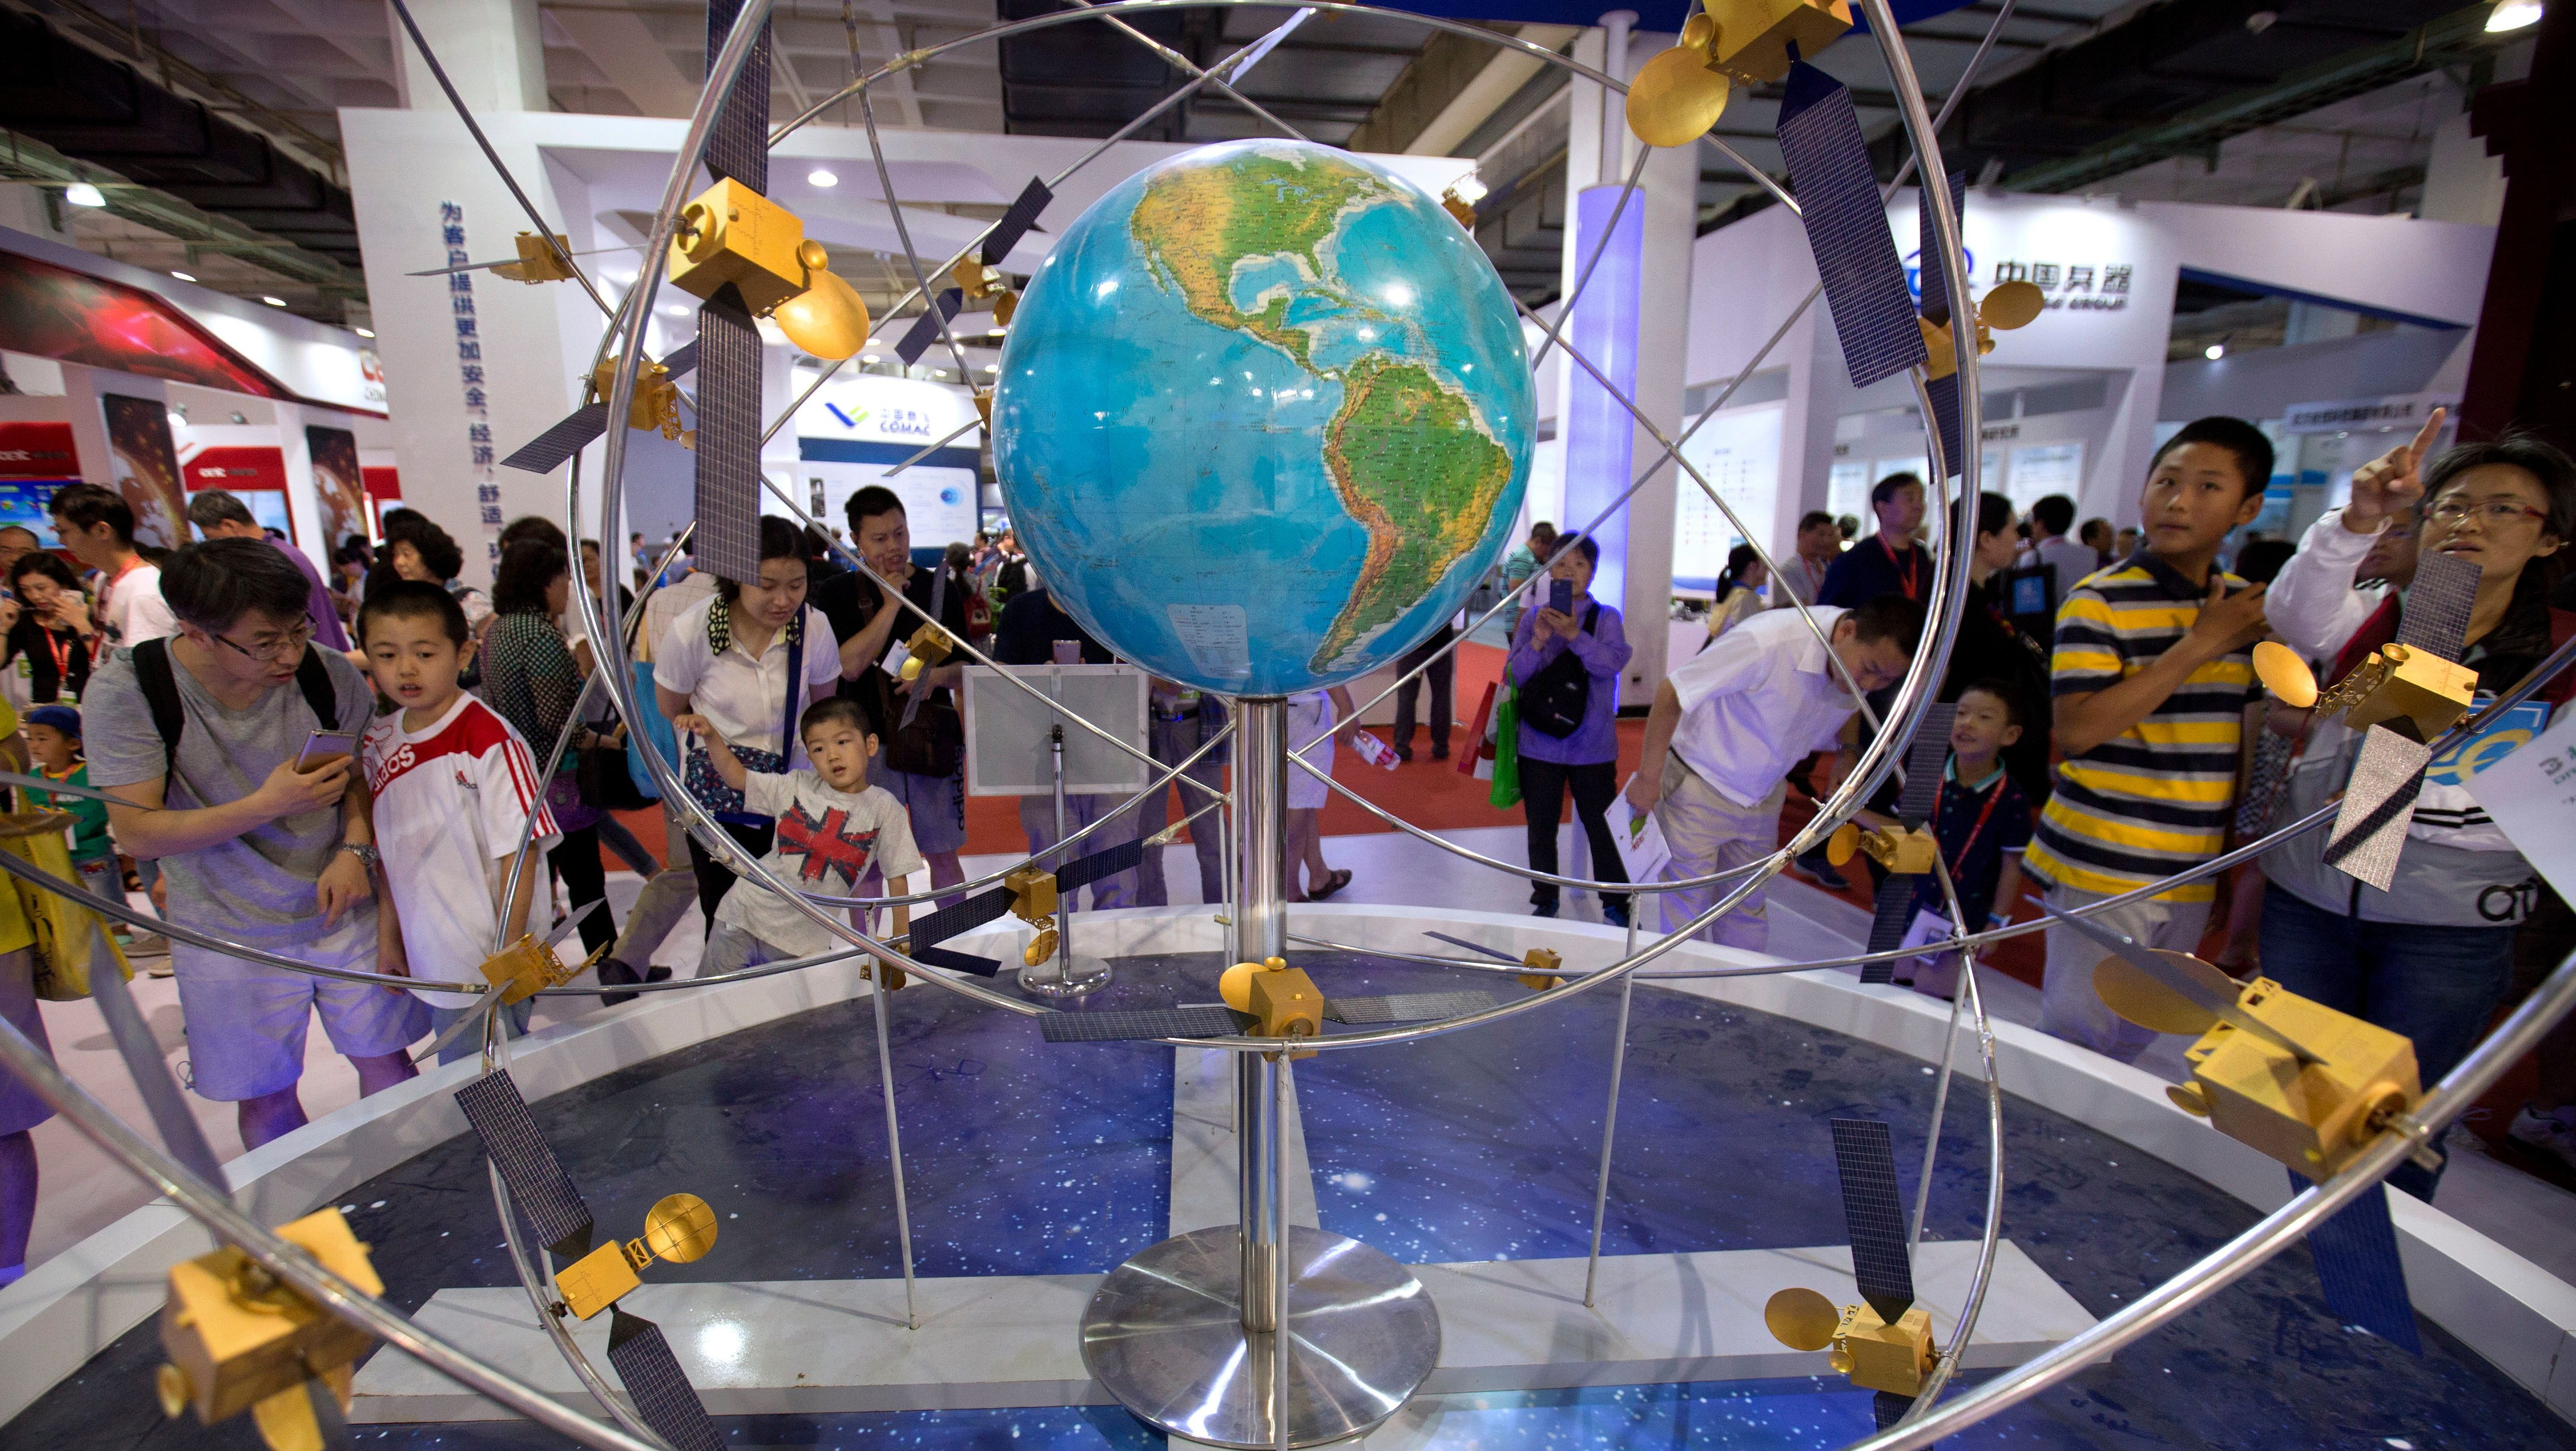 Visitors look at a mockup of China's homegrown Beidou satellite navigation system at the China Beijing International High-Tech Expo in Beijing, Saturday, June 10, 2017. The annual forum and exhibition is a showcase for Chinese domestic technology companies and innovation. (AP Photo/Mark Schiefelbein)